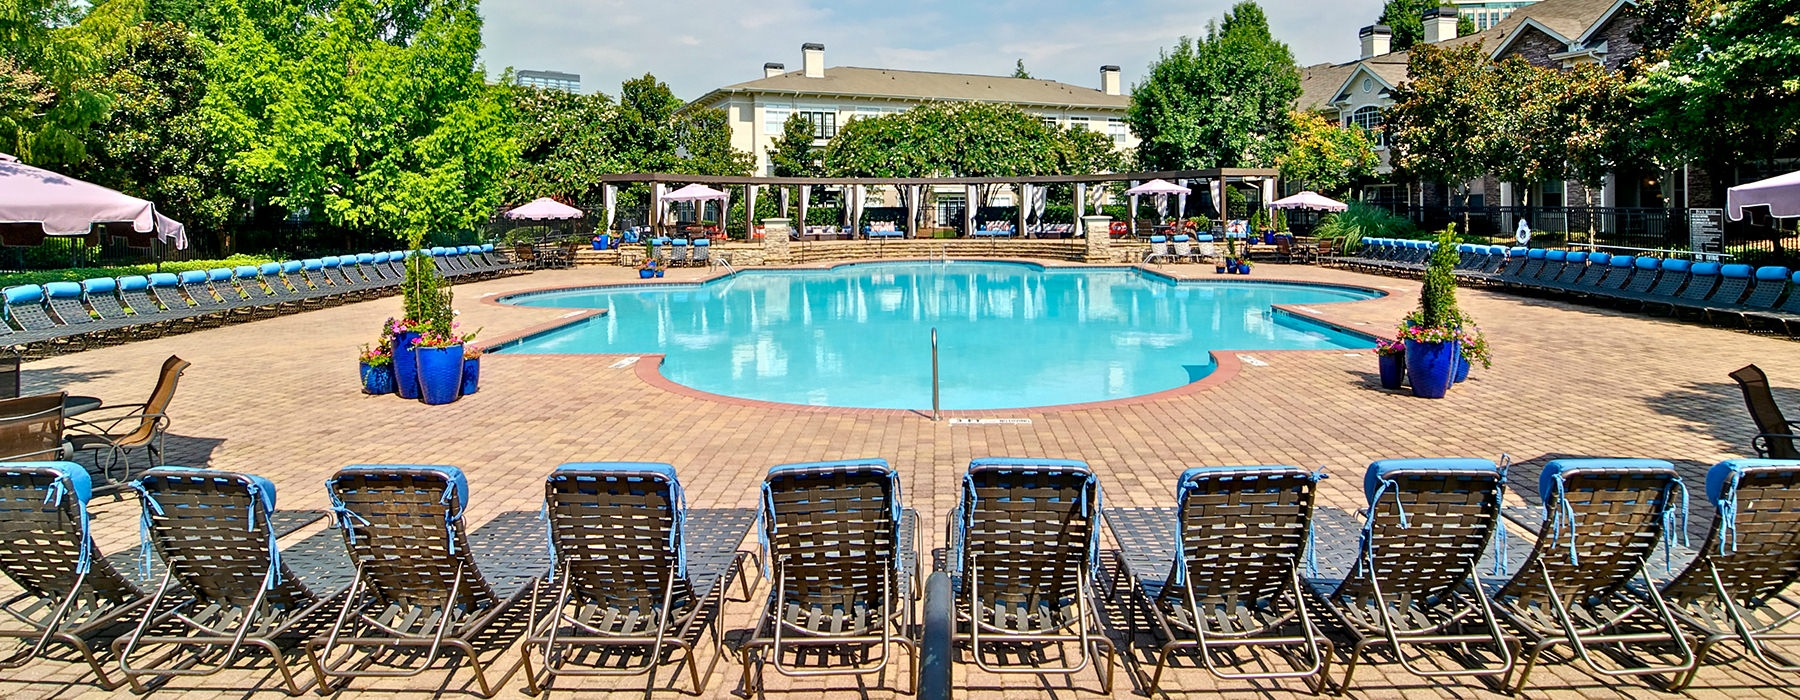 Large pool with resort-style chaise loungers at Aspire Lenox Park Apartments near Ridgedale Park